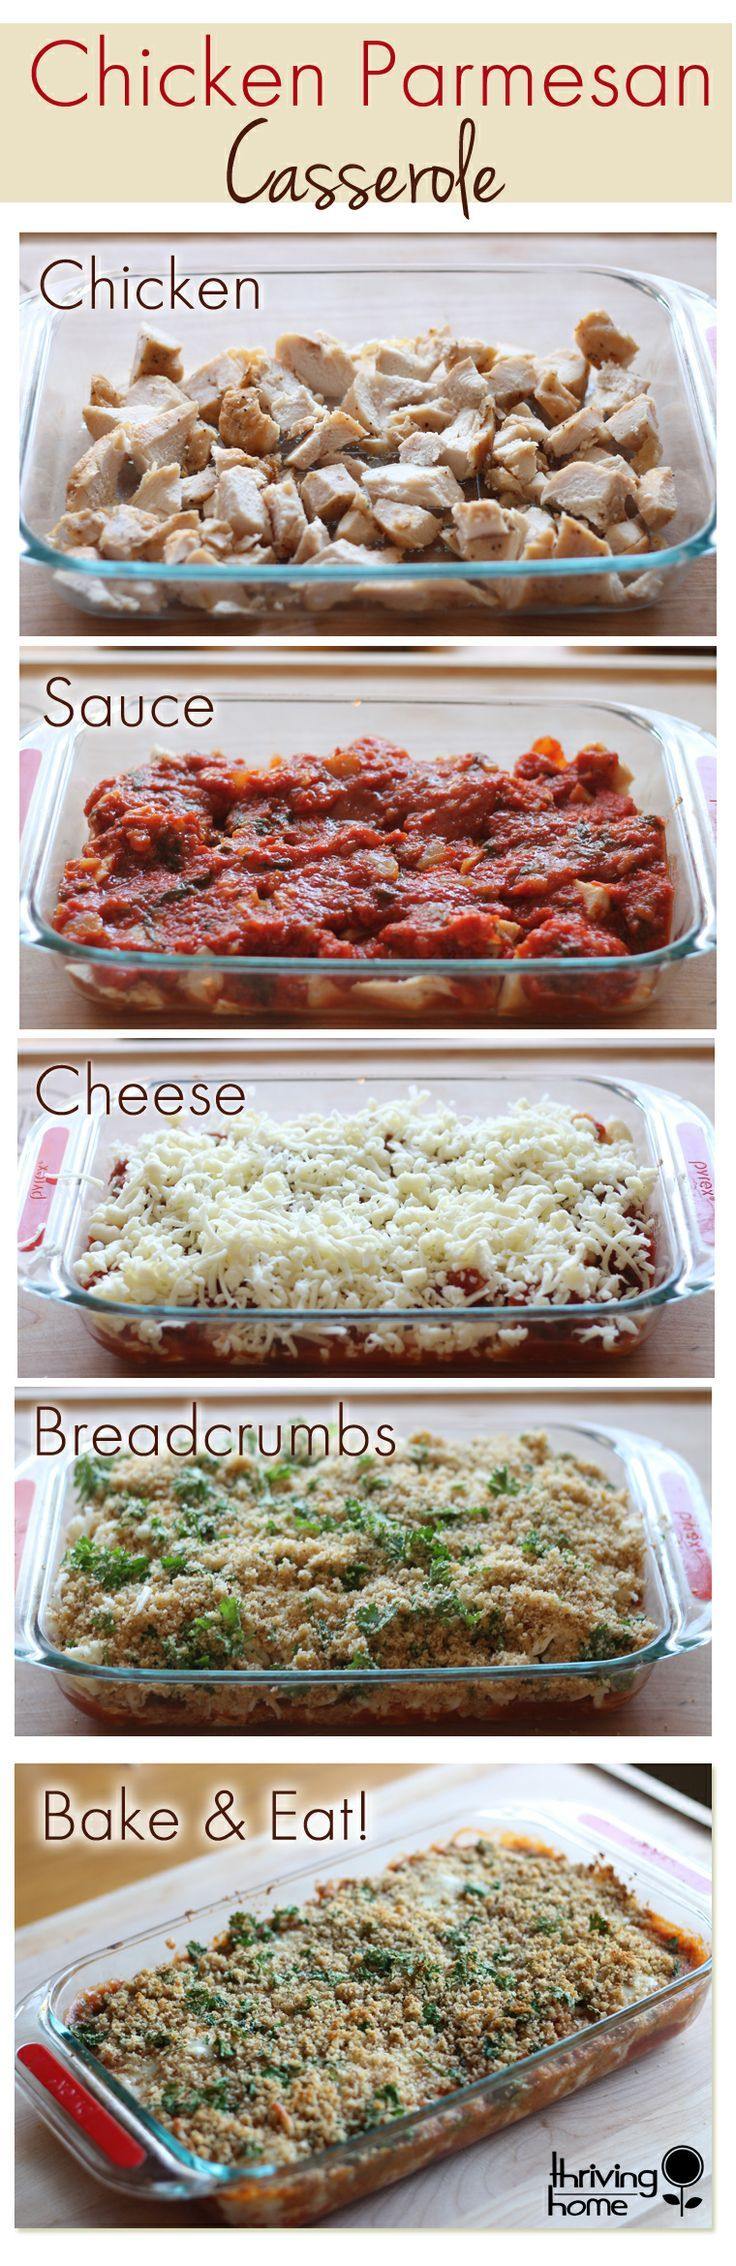 Chicken Parmesan Casserole Recipe...yum!